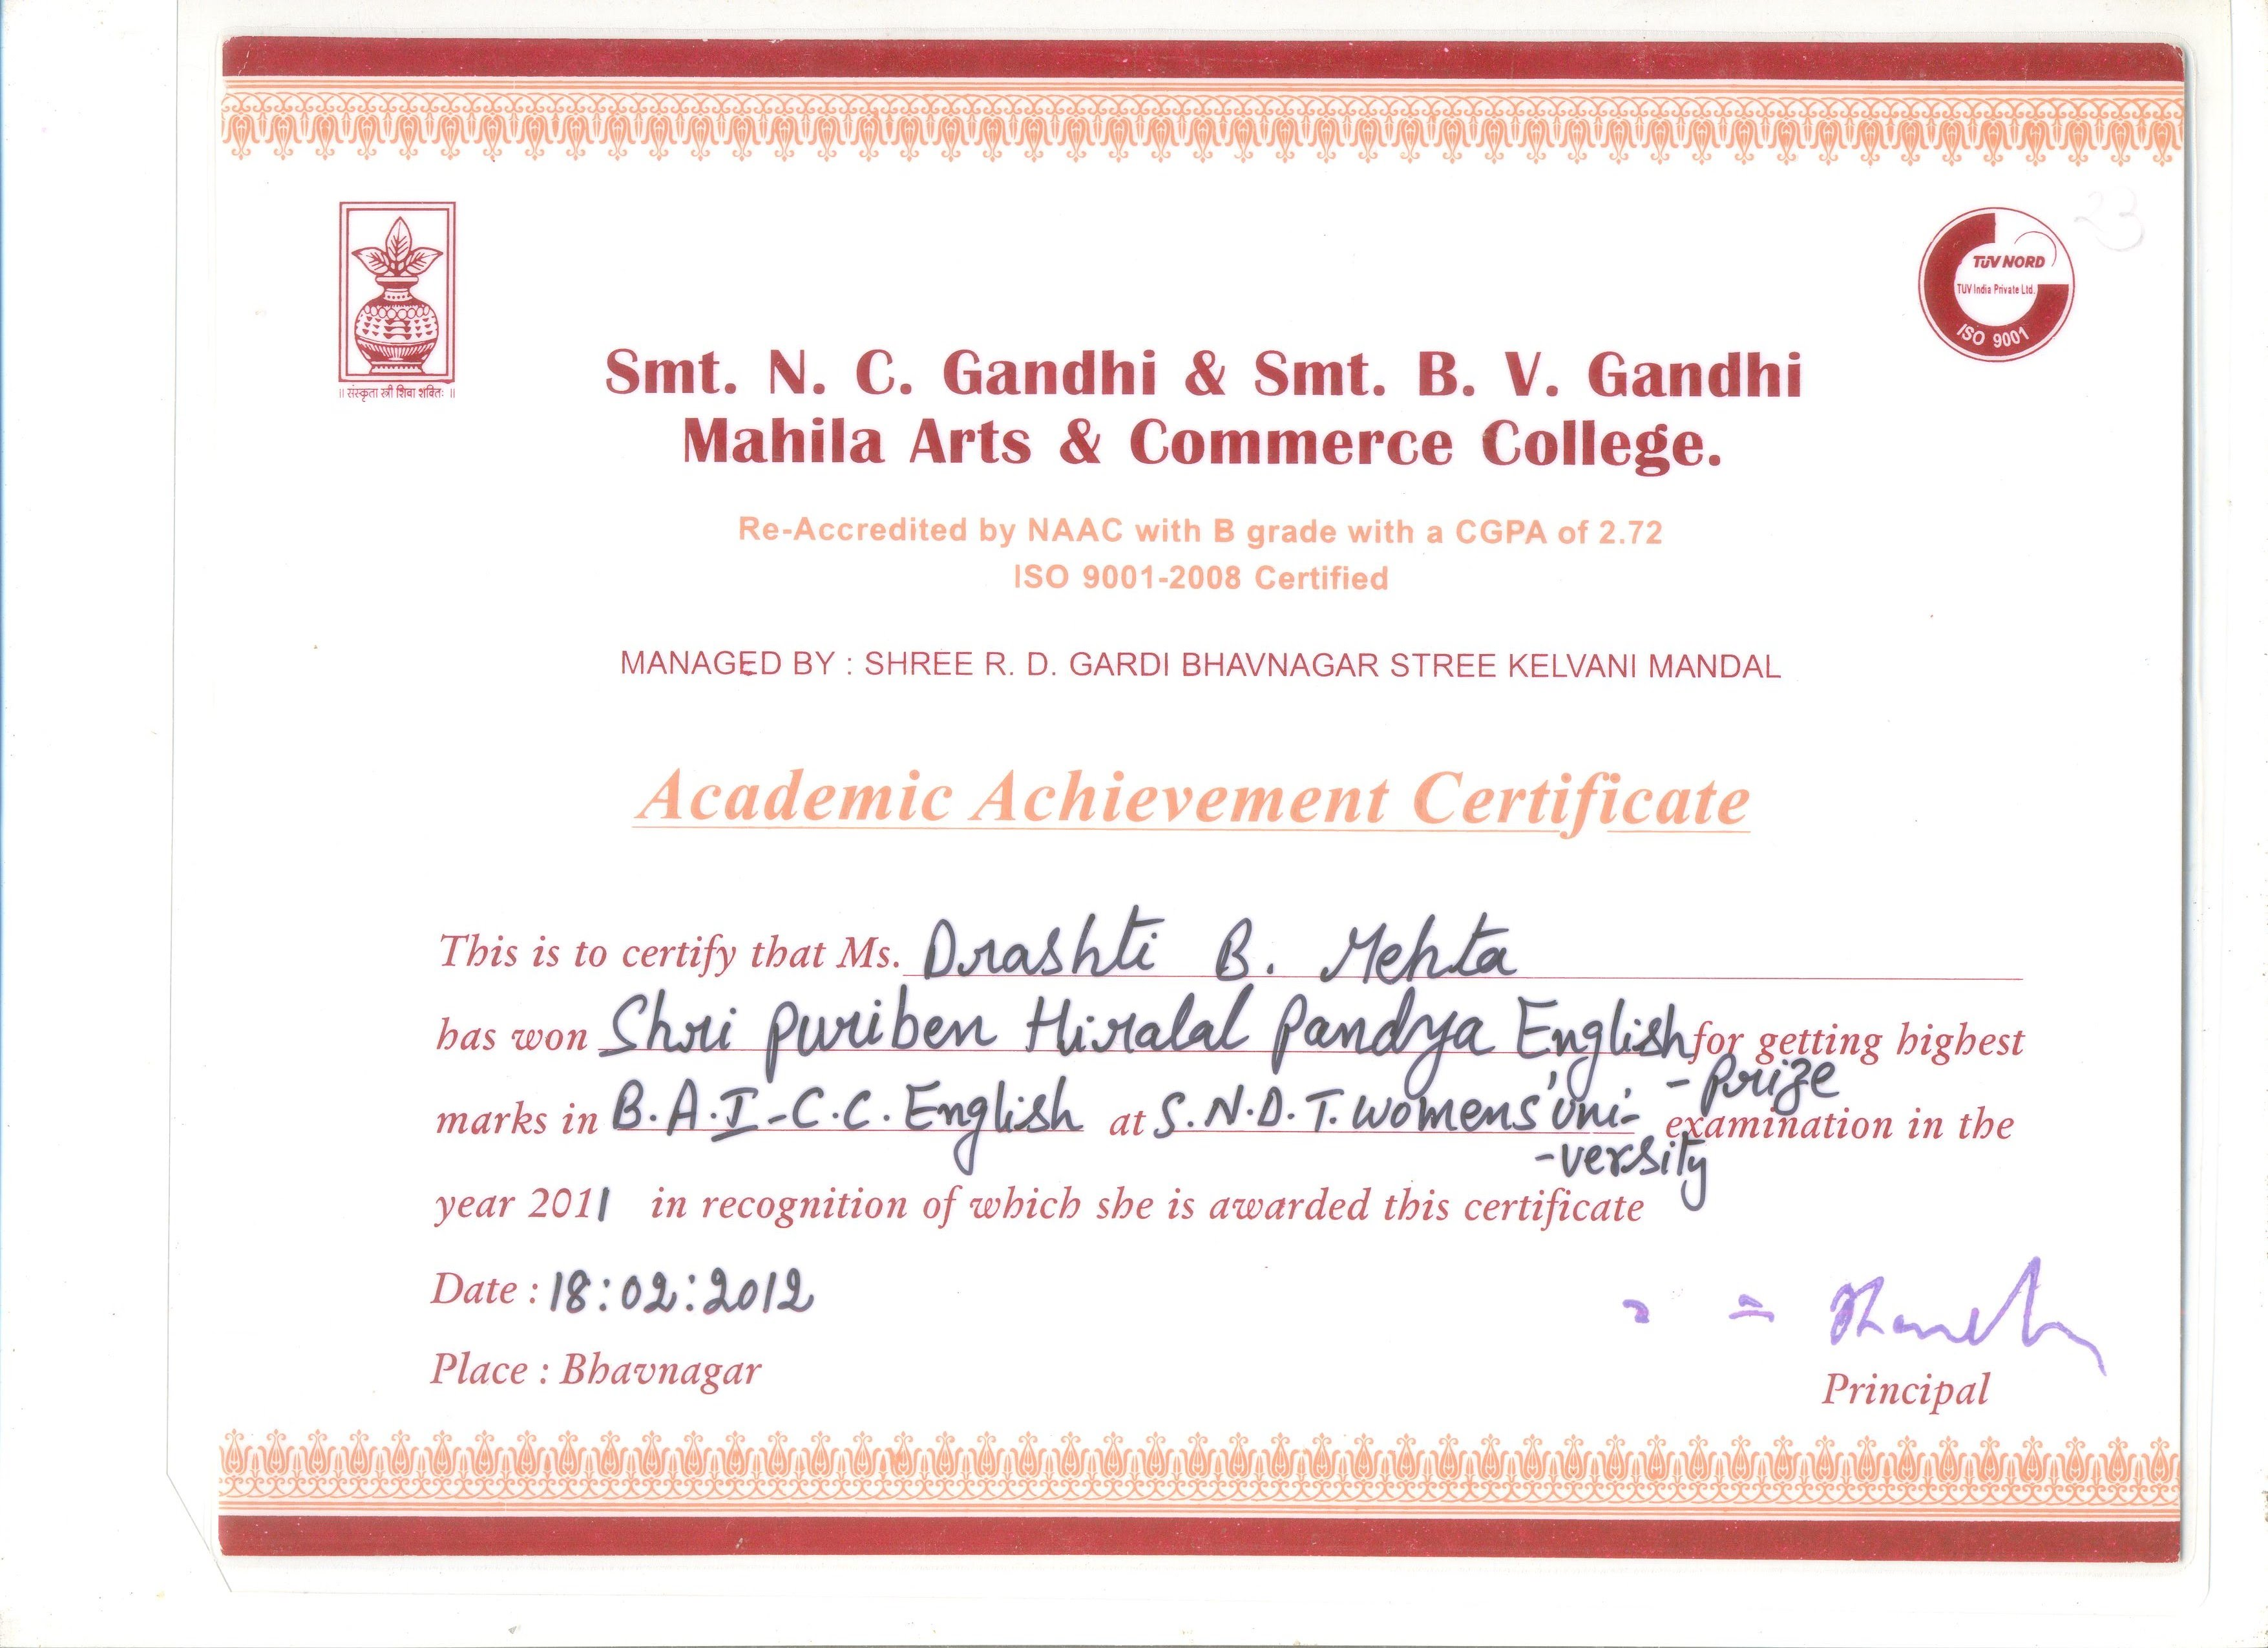 jpg i received a certificate for scoring highest marks in f y b a in c c english course core component course on s n d t women s university mumbai